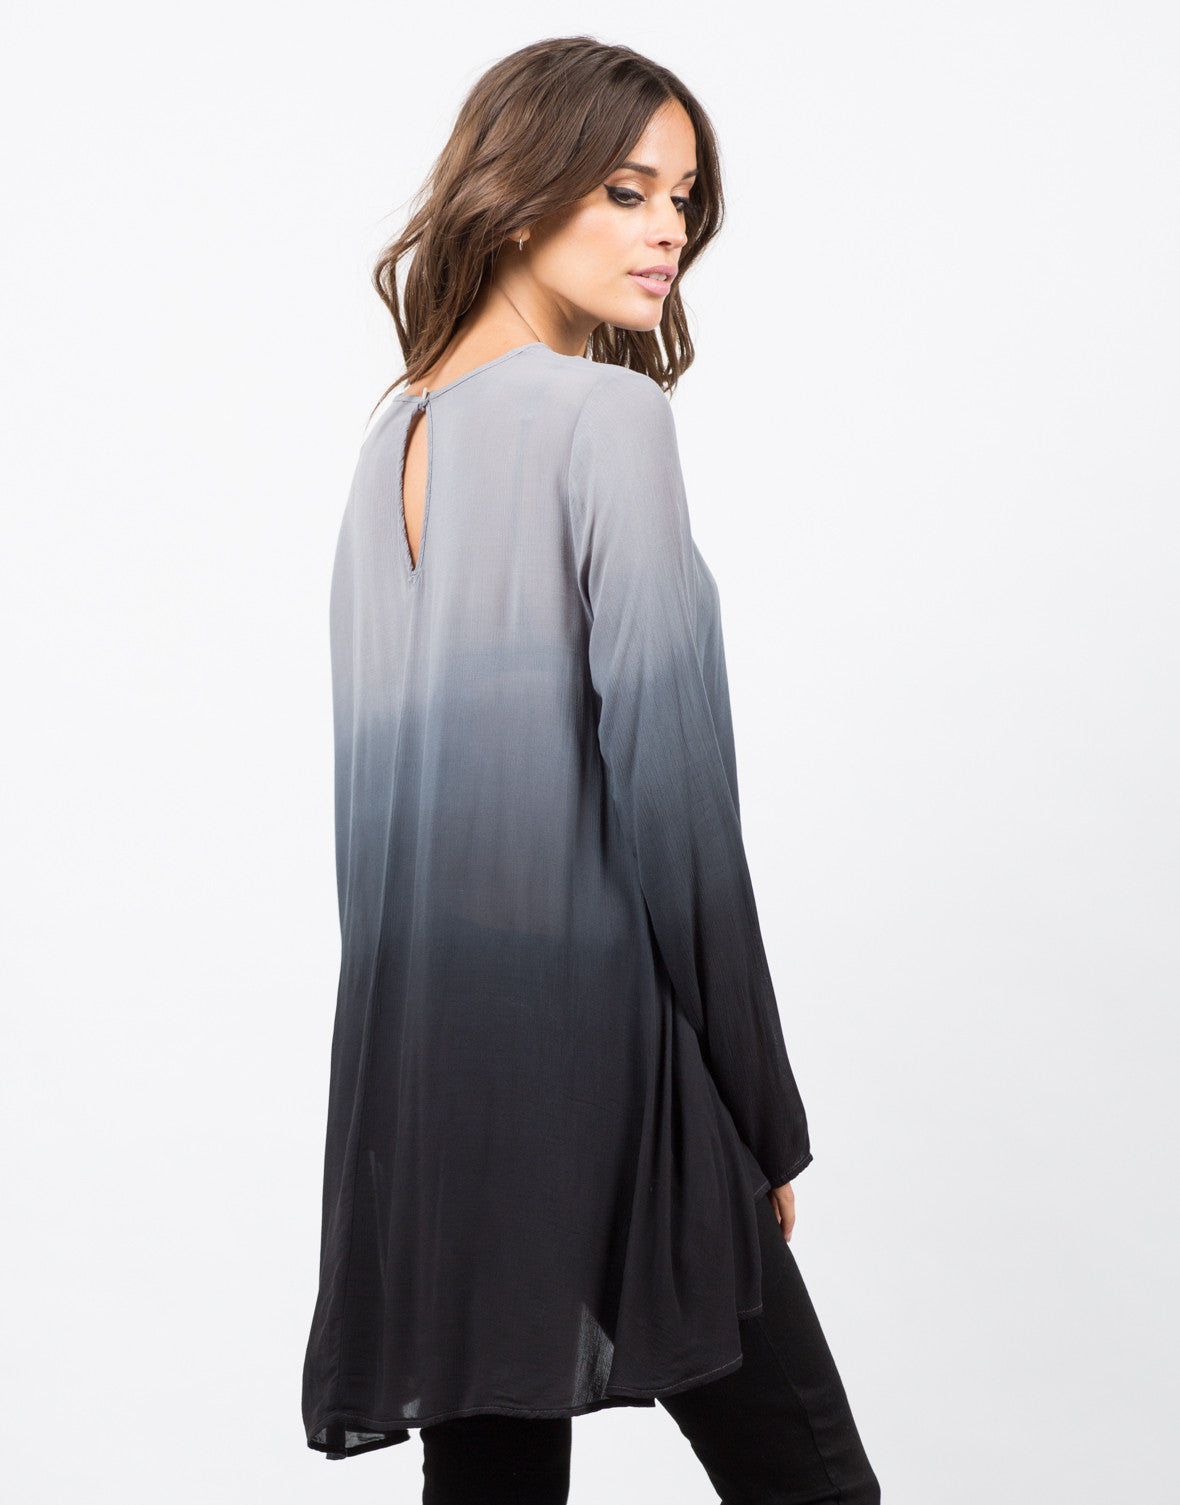 Back View of Ombre Tunic Blouse